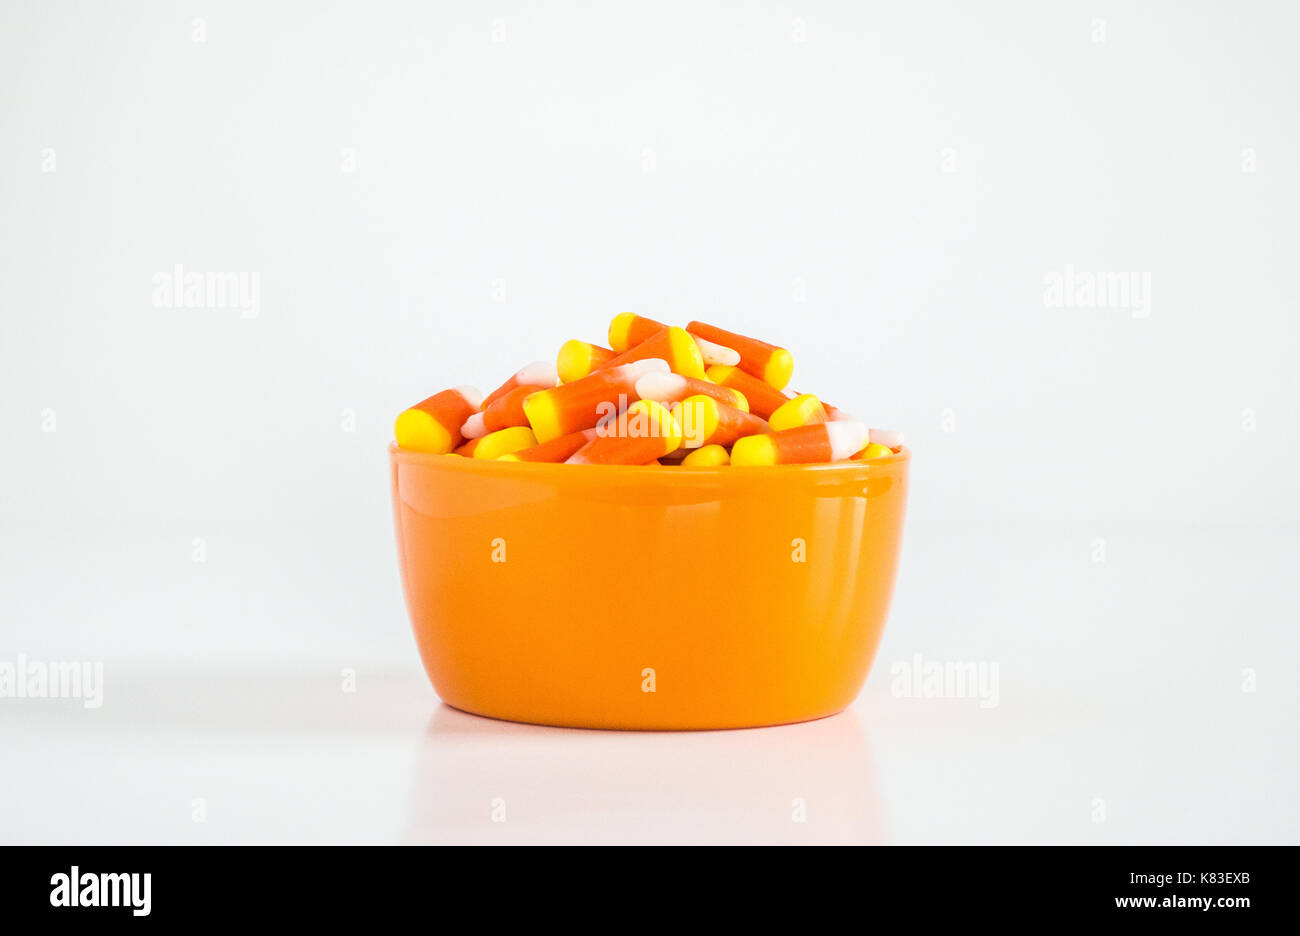 candy corn in an orange bowl isolated on white - Stock Image